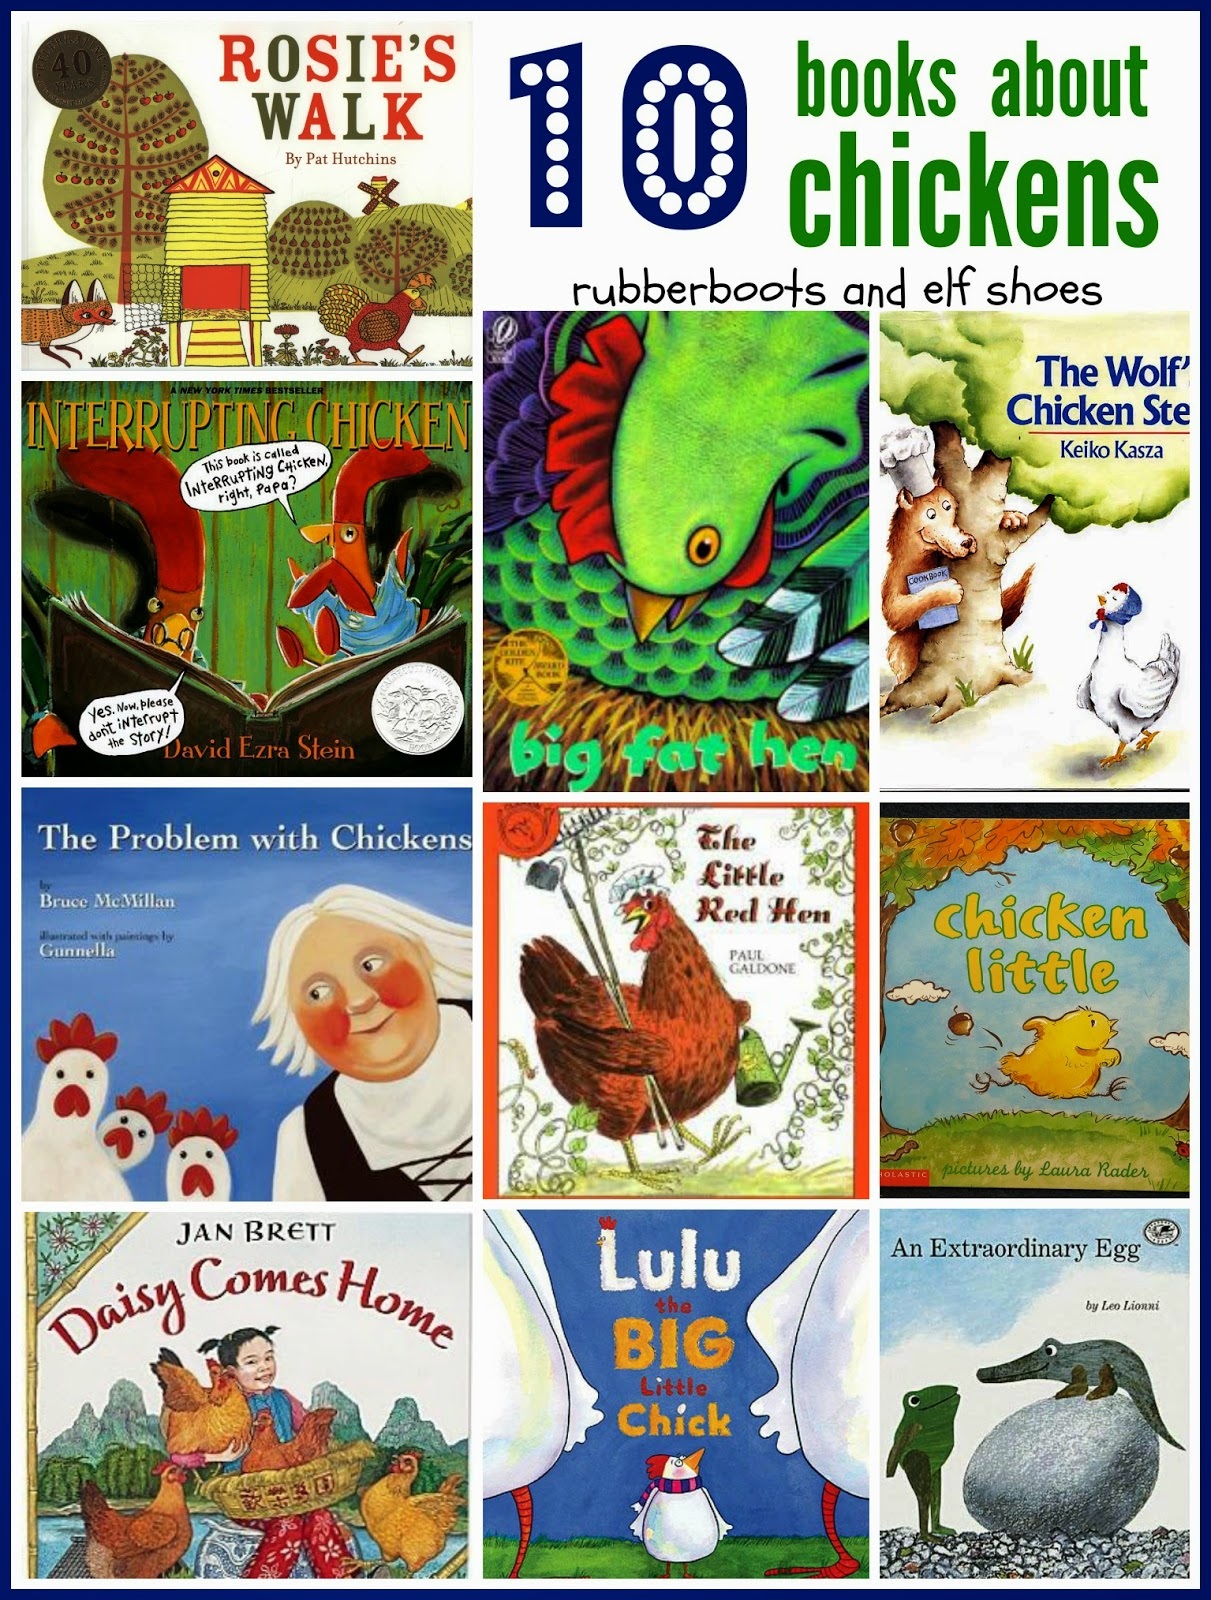 10 Fiction Books About Chickens